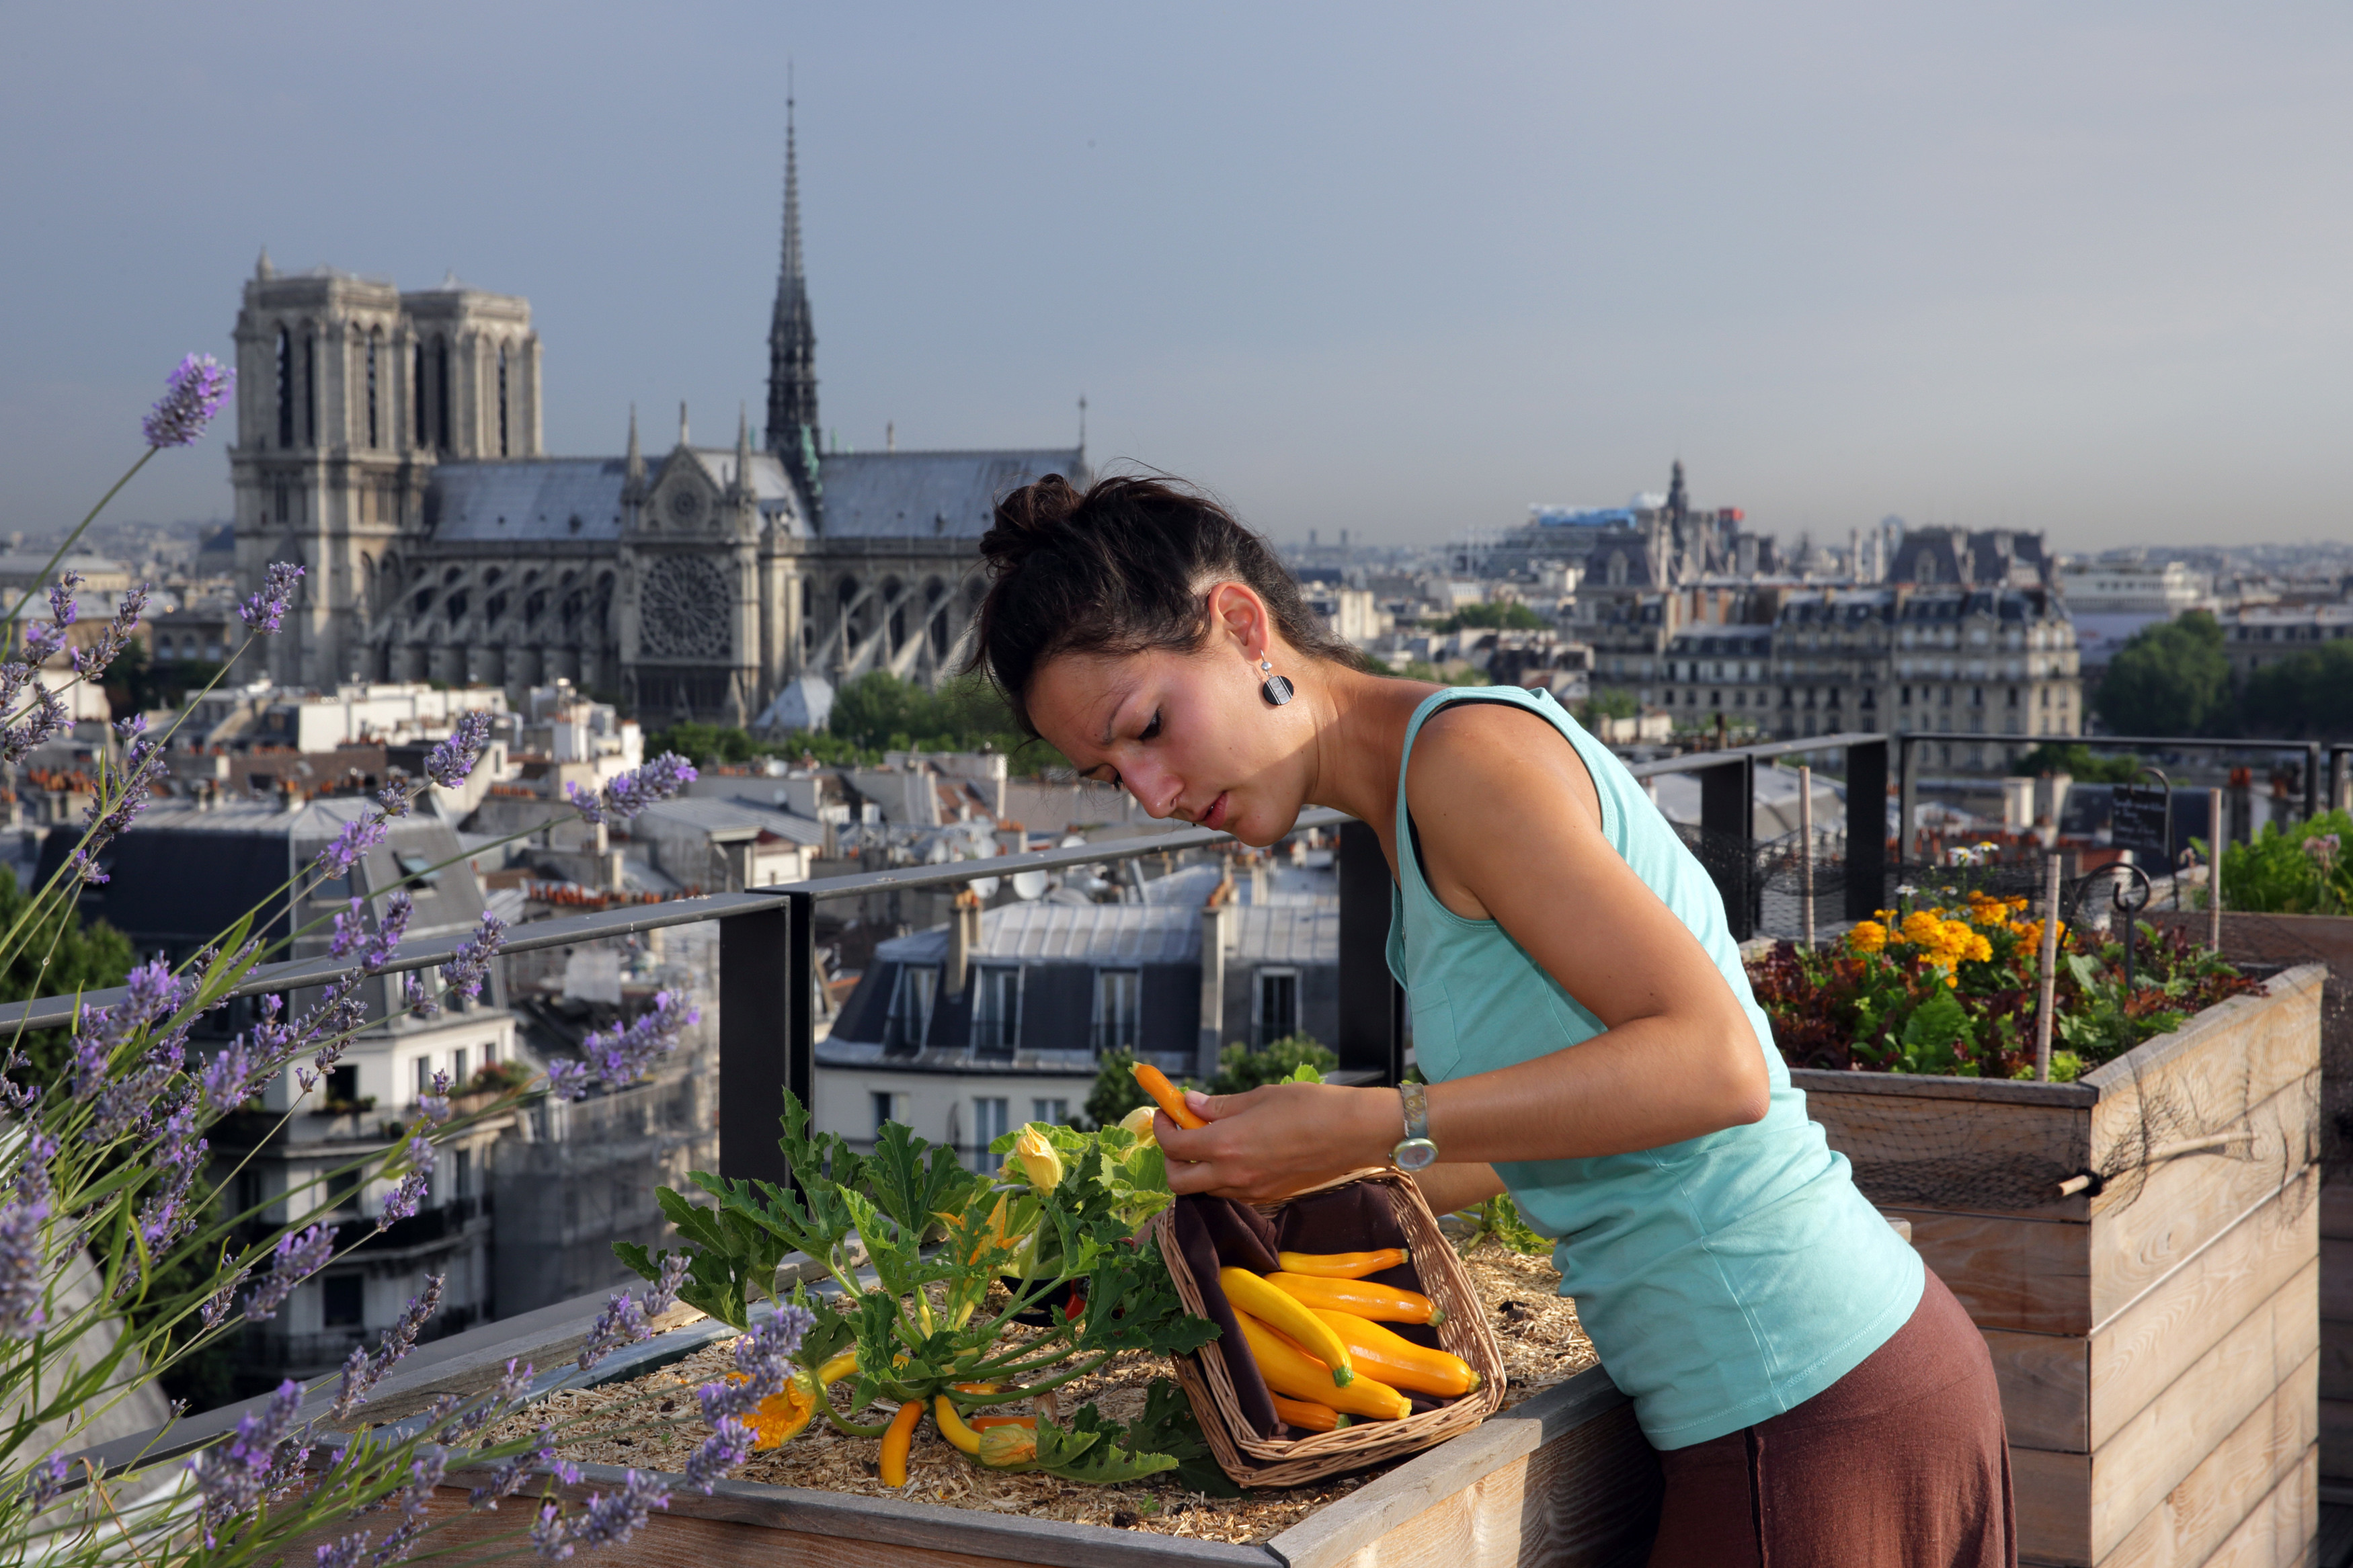 A women tends to her vegetables on a rooftop farm in an urban environment